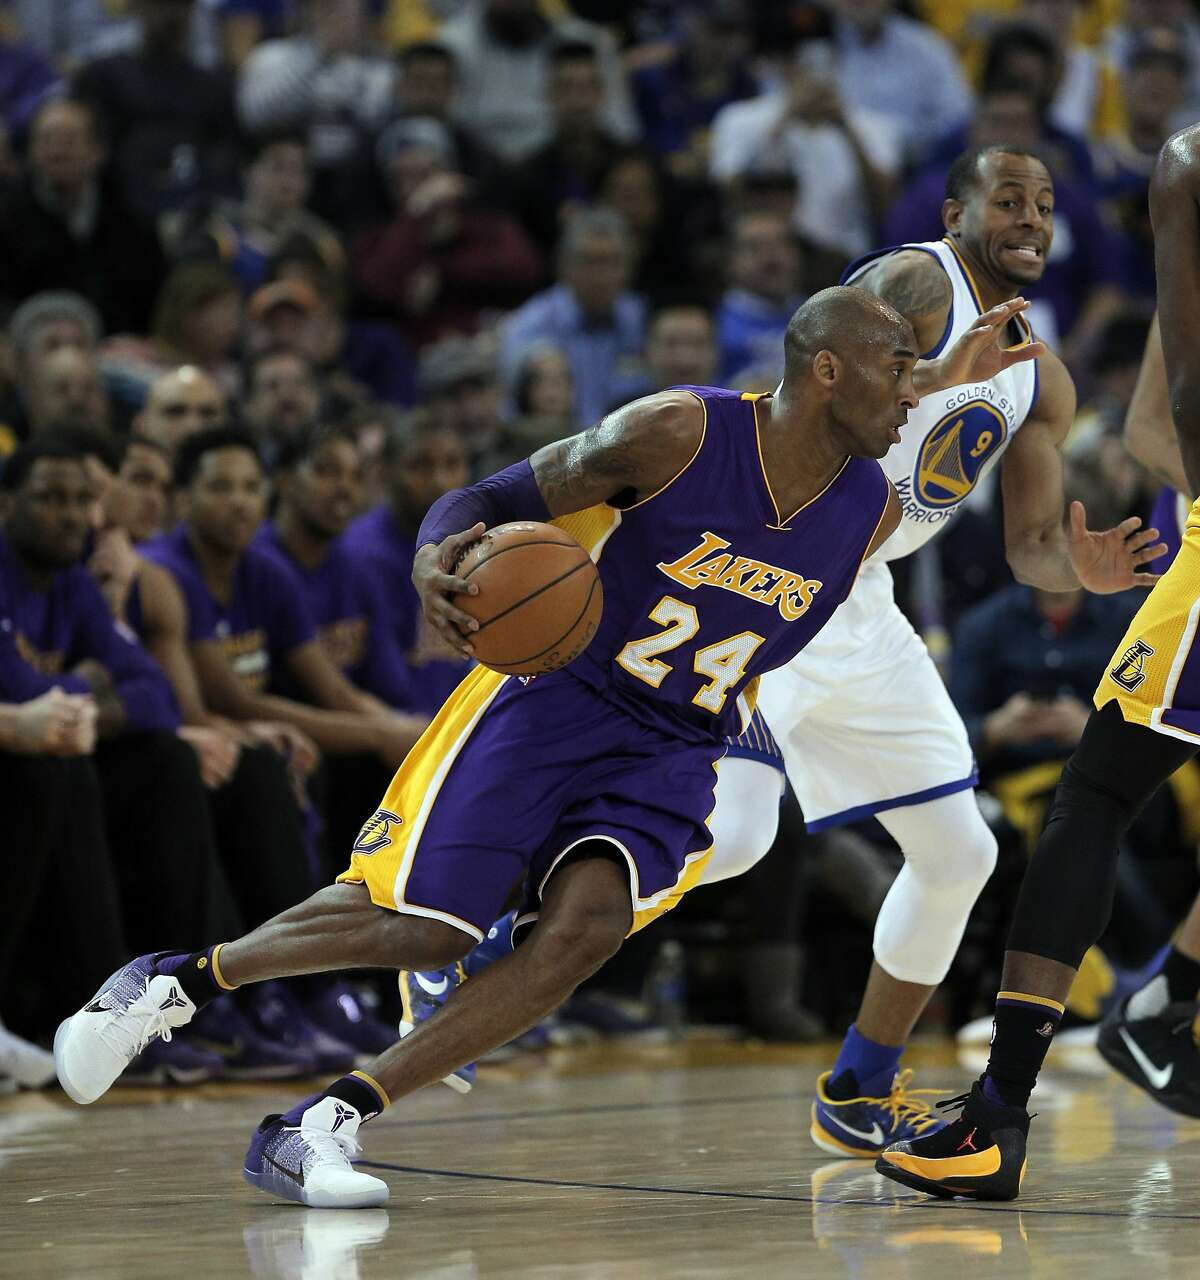 Andre Iguodala (9) defends against Kobe Bryant (24) in the first half the Golden State Warriors played against the Los Angeles Lakers at Oracle Arena in Oakland, Calif., on Thursday, January 14, 2016.